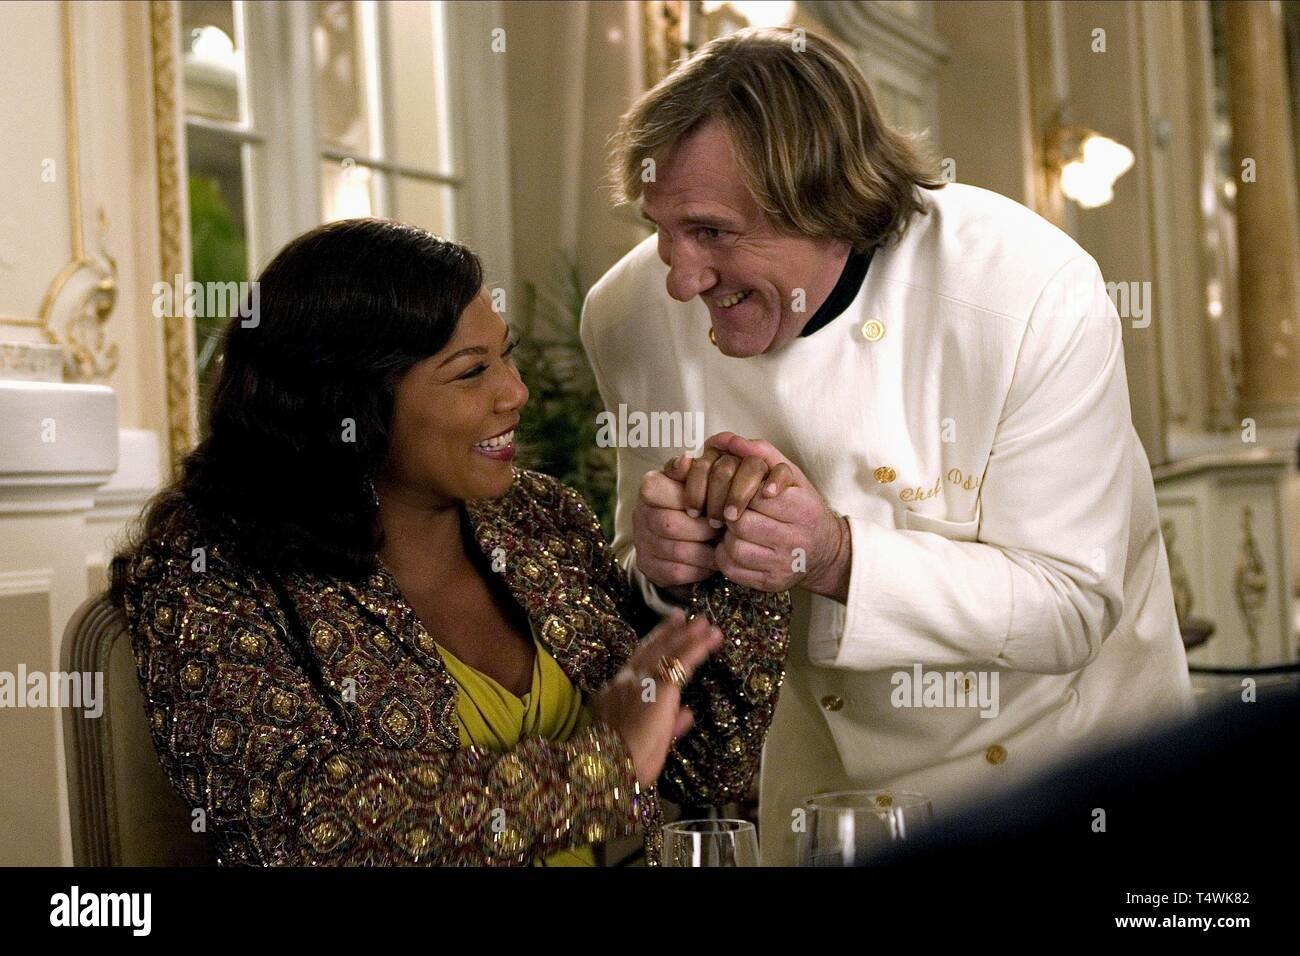 The Holiday 2006 Movie High Resolution Stock Photography And Images Alamy